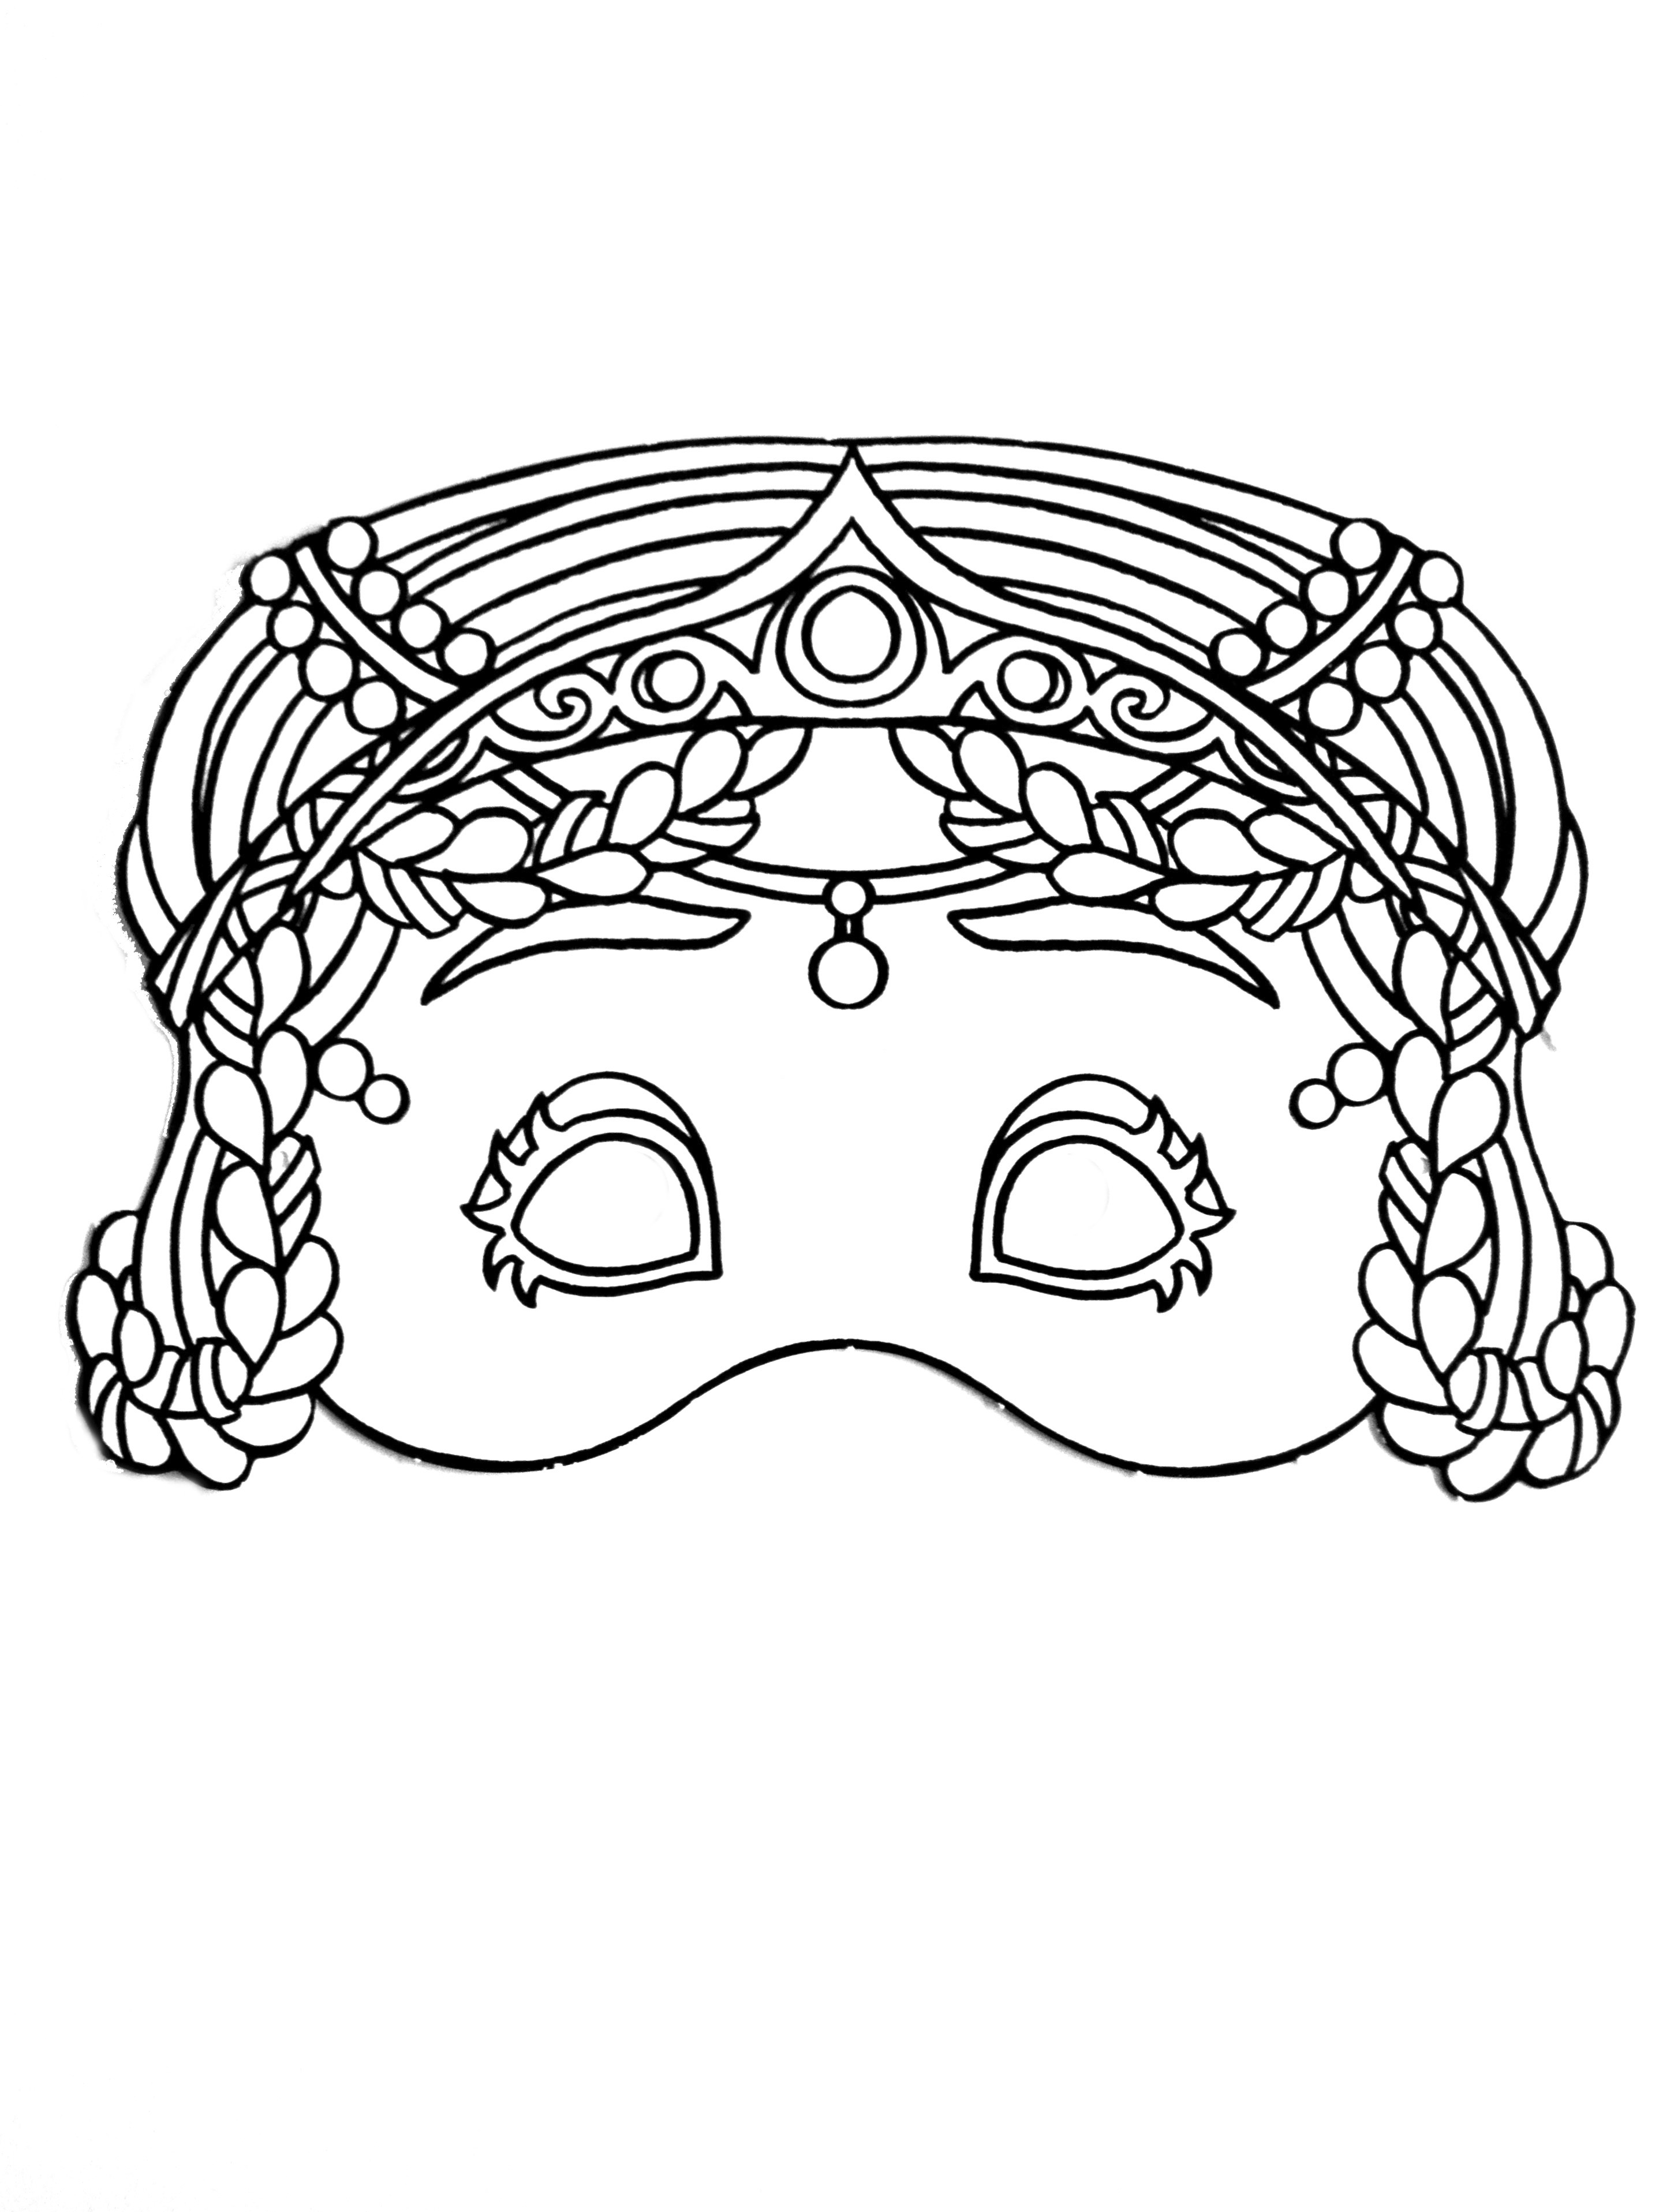 Simple Masks coloring page for kids